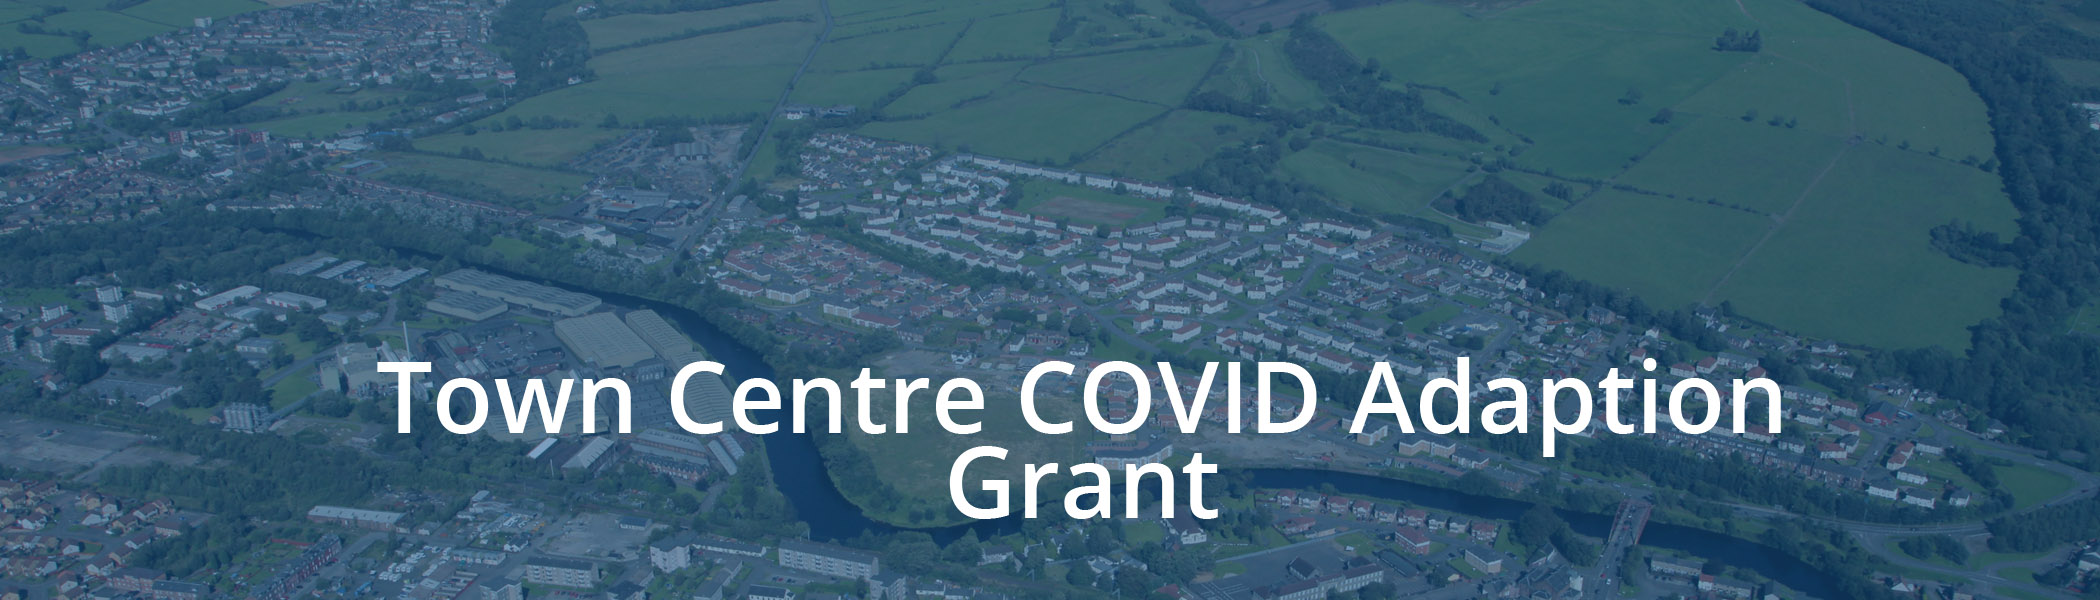 Vale Town Centre COVID Adaption Grant